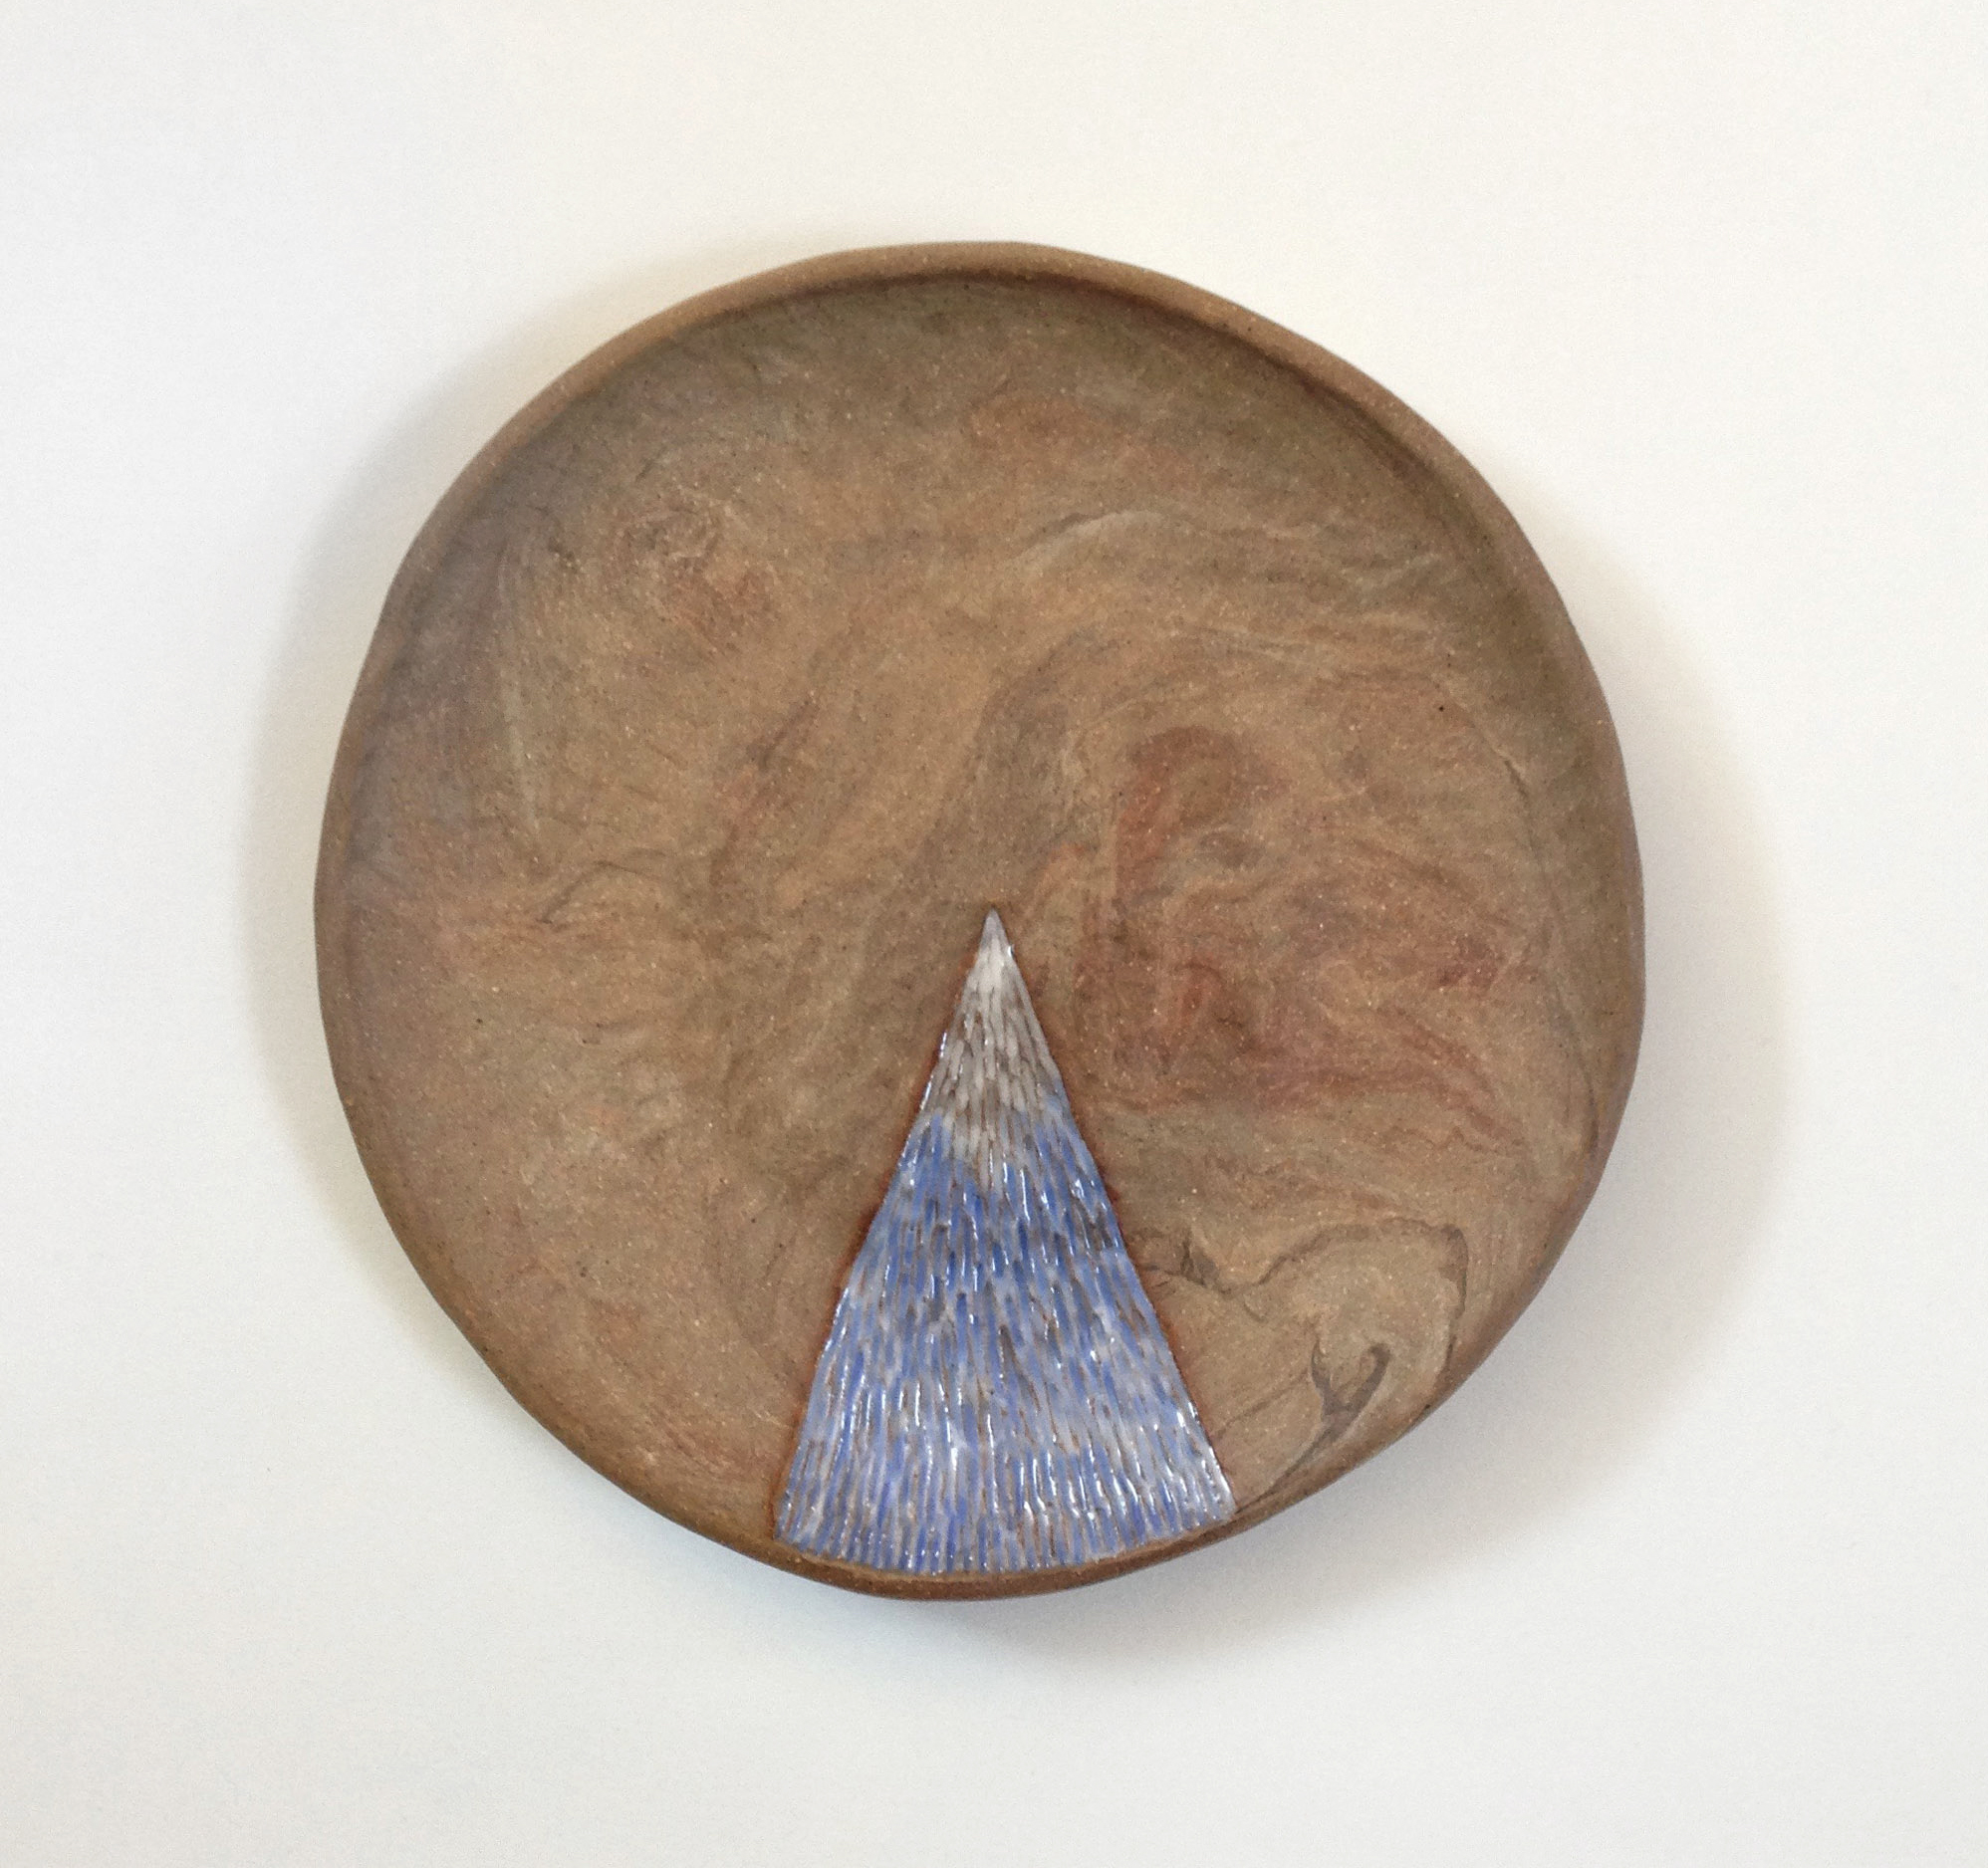 Recycled pinch dish